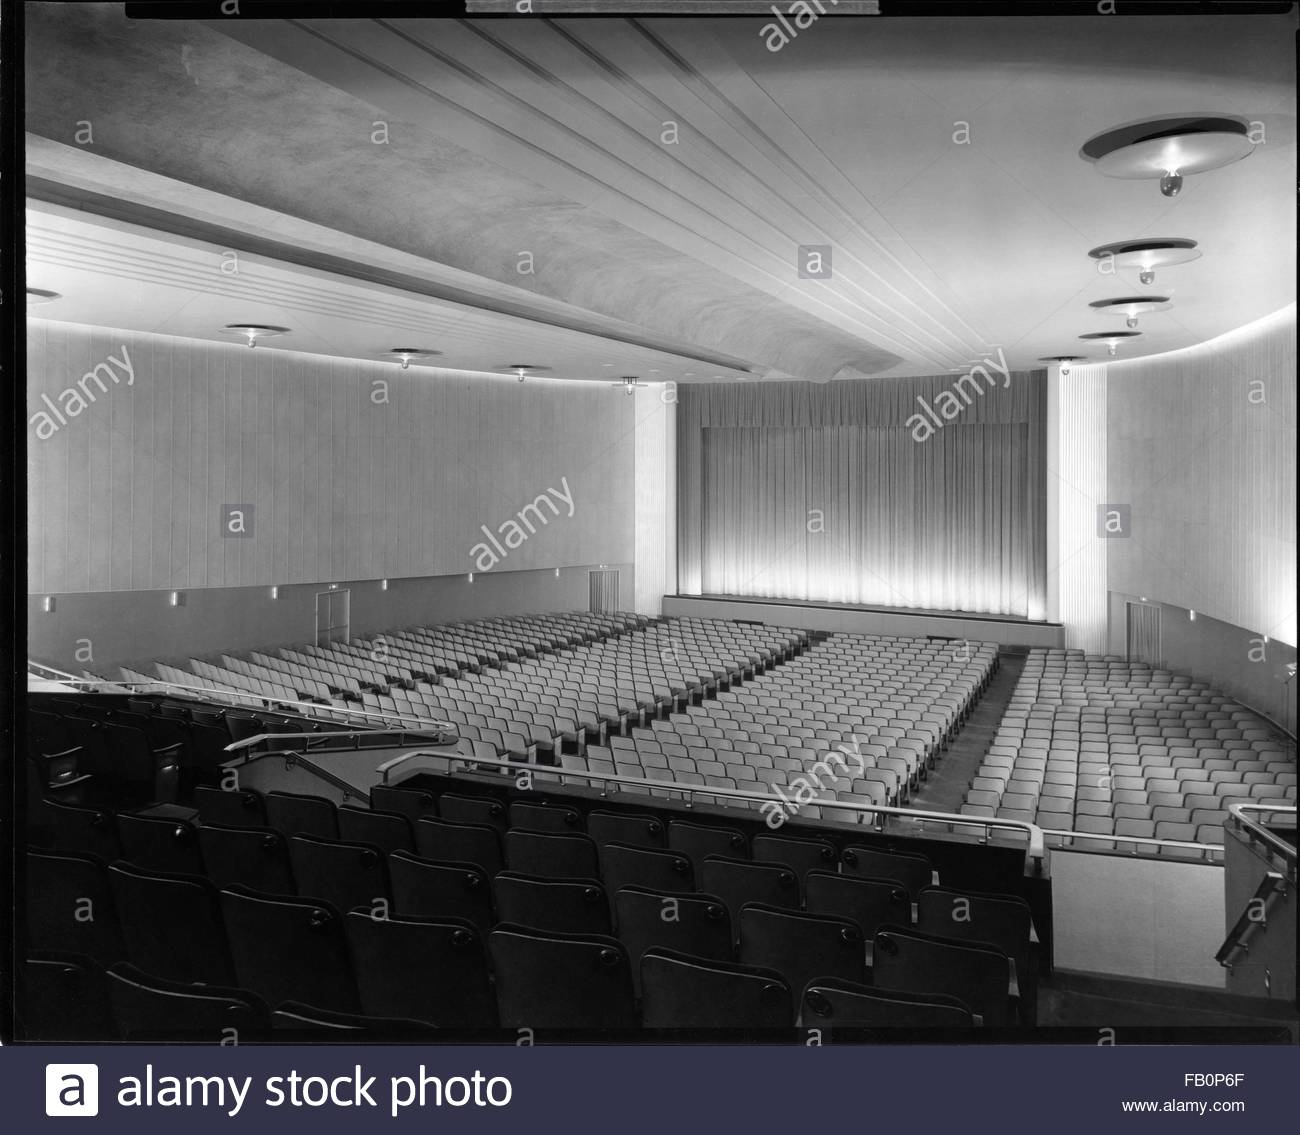 Beverly Theater and other Chicago views, 1935 Aug. 15. Interior, view from the back of the theater toward the stage. - Stock Image